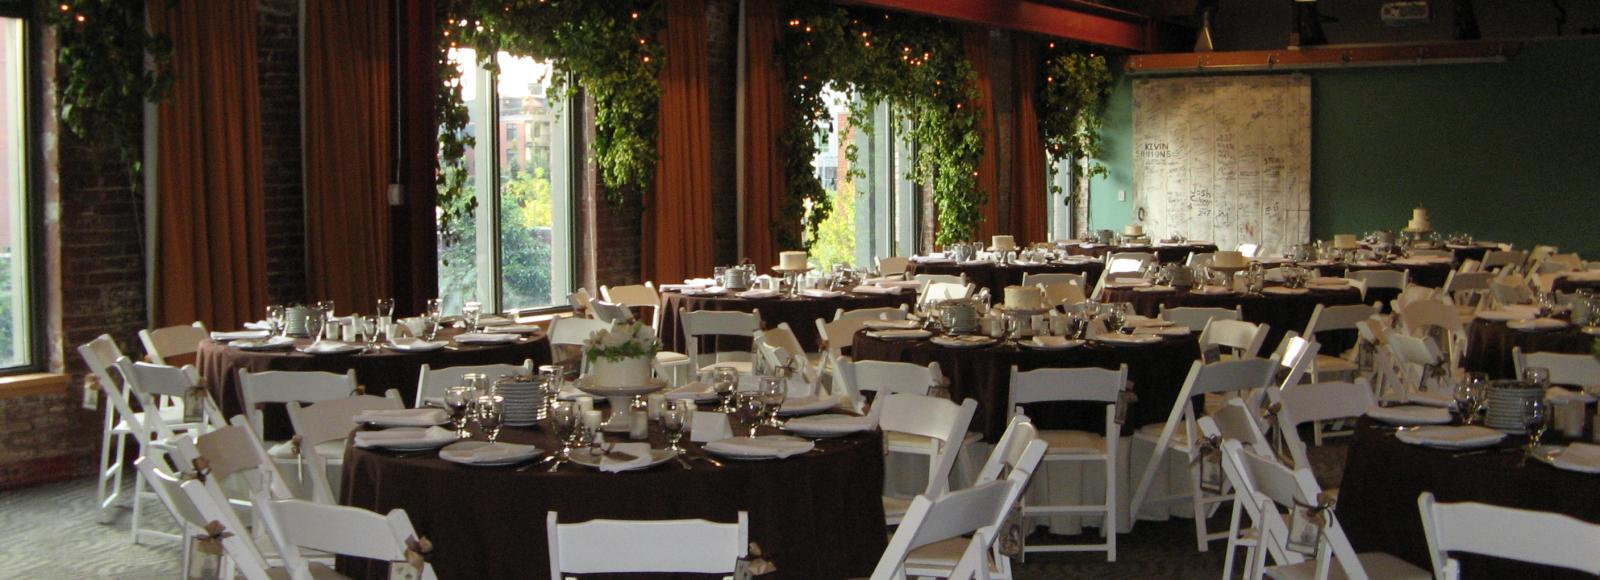 Round tables with formal settings in room with brick walls, windows, and vines